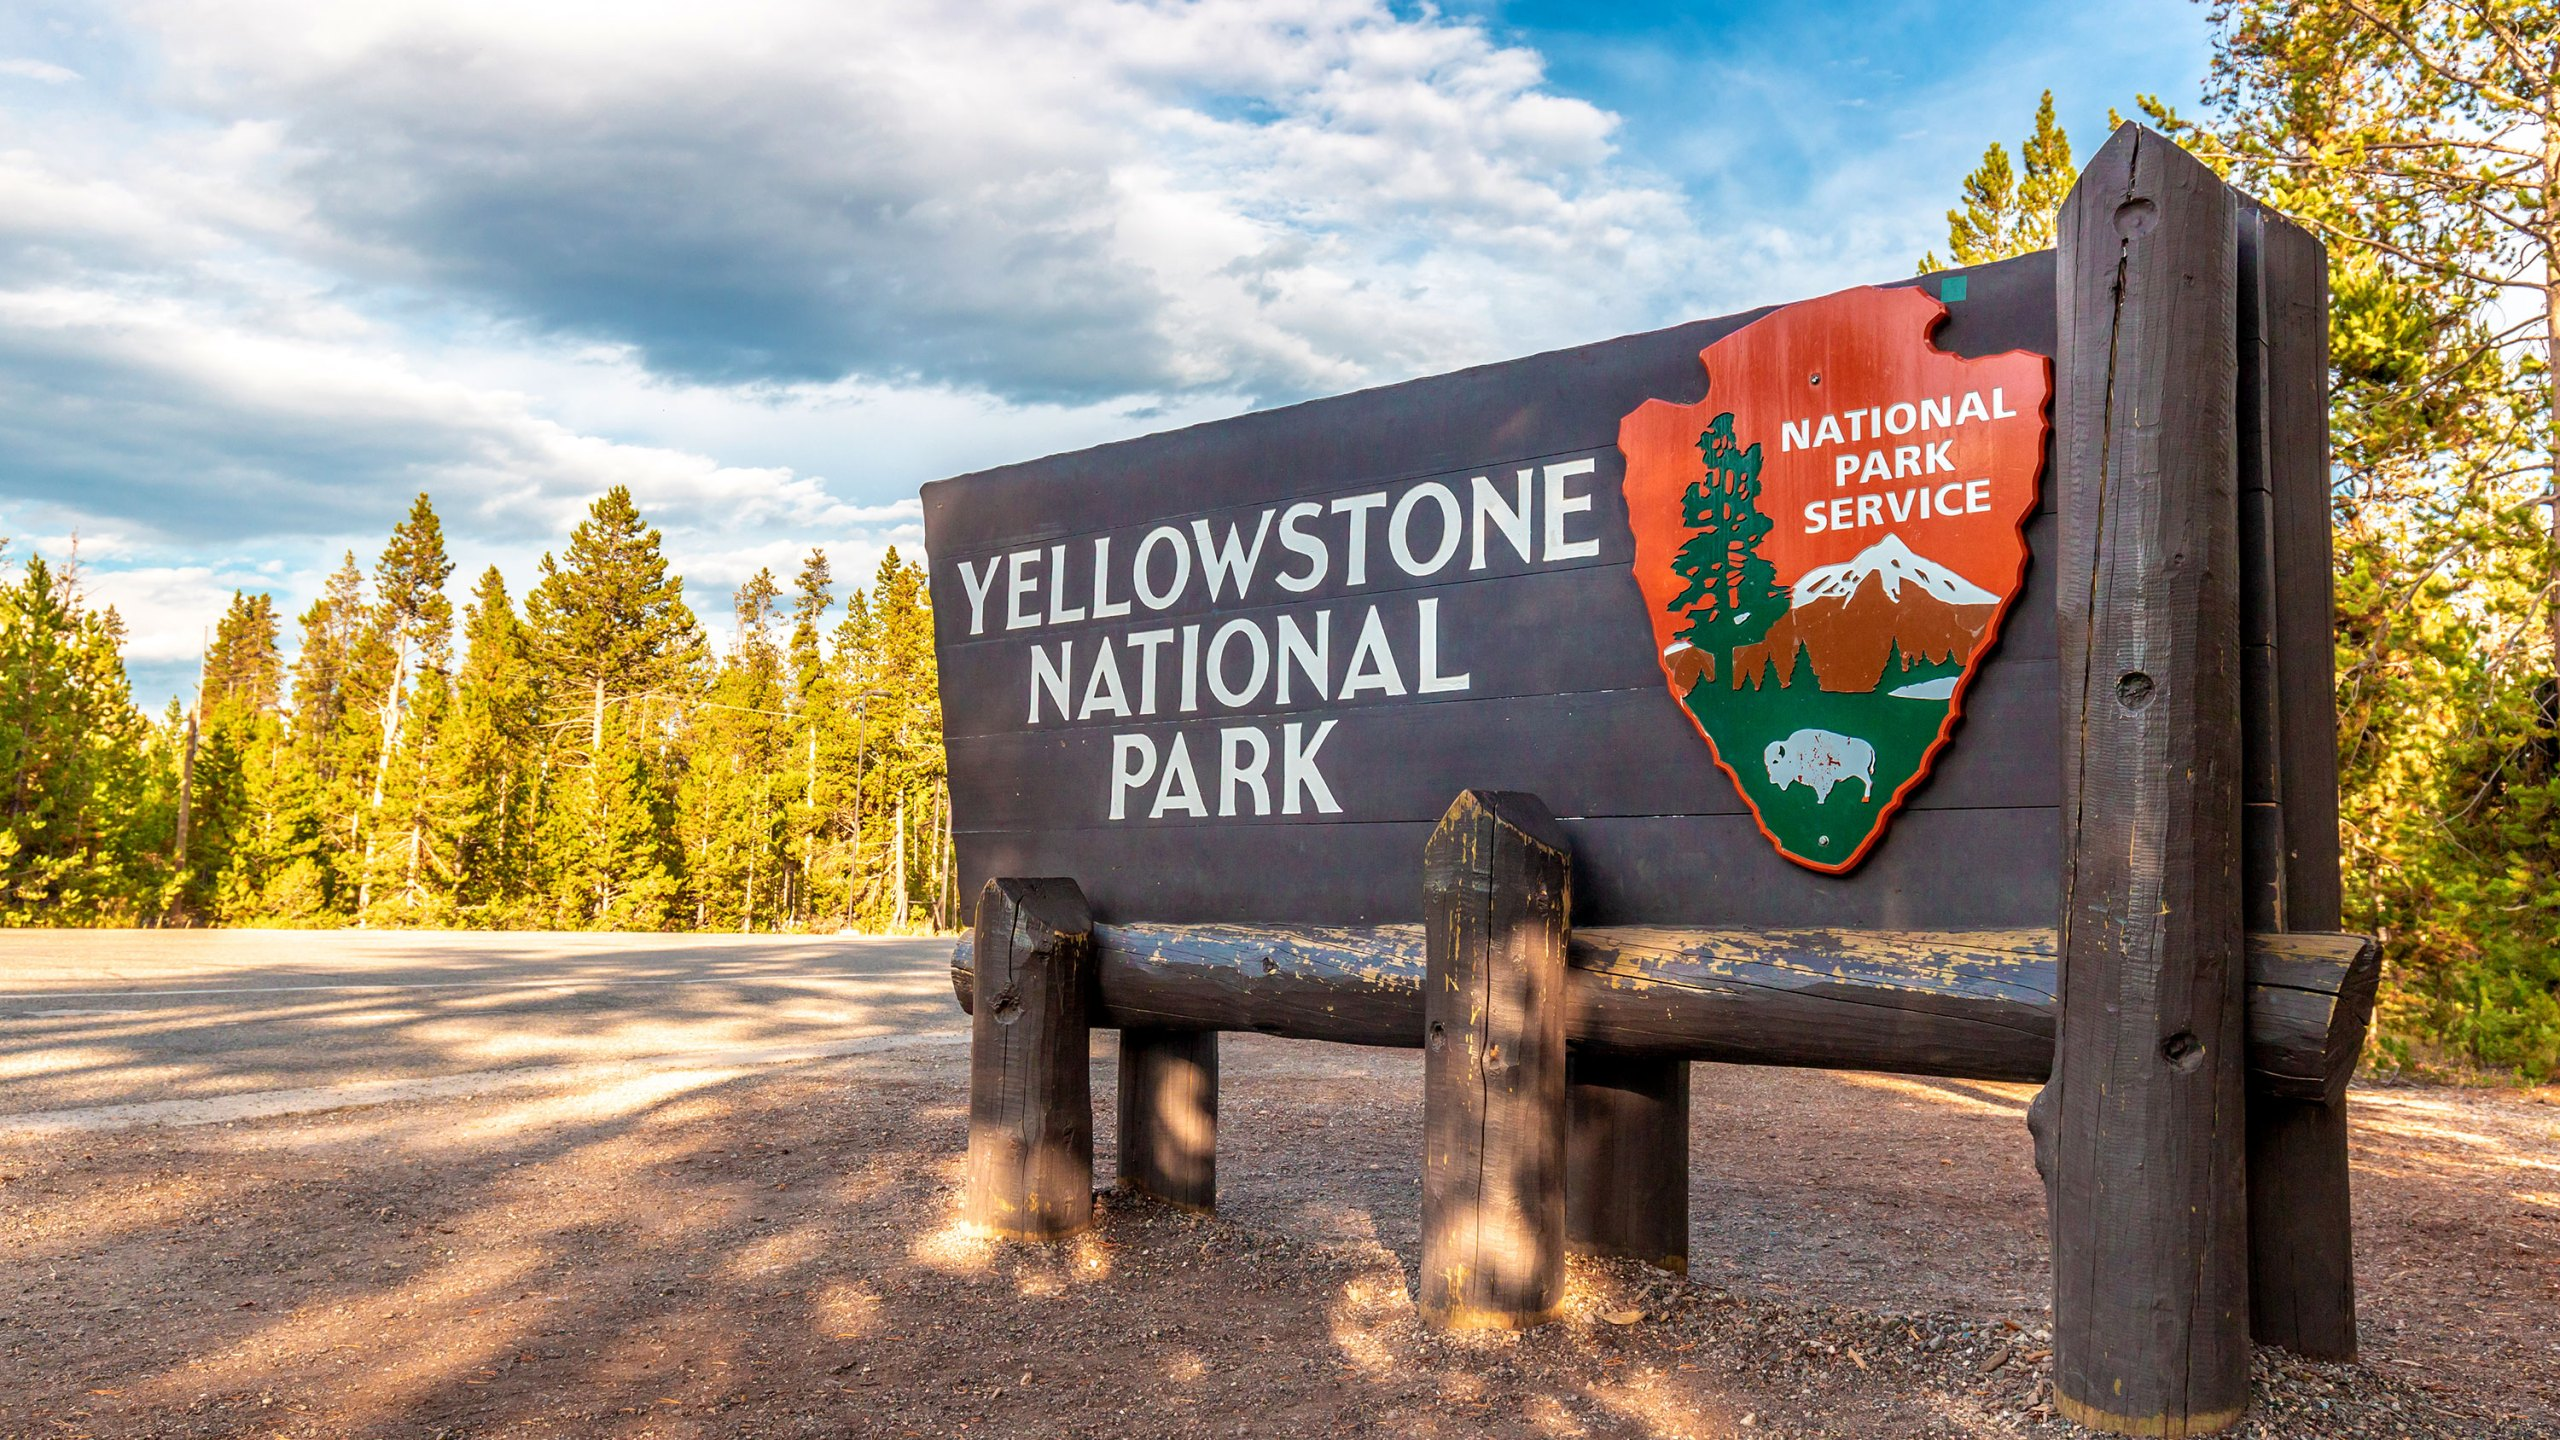 A woman was gored by a bison as she tried to take a picture of it in Yellowstone National Park. (Shutterstock via CNN Wire)